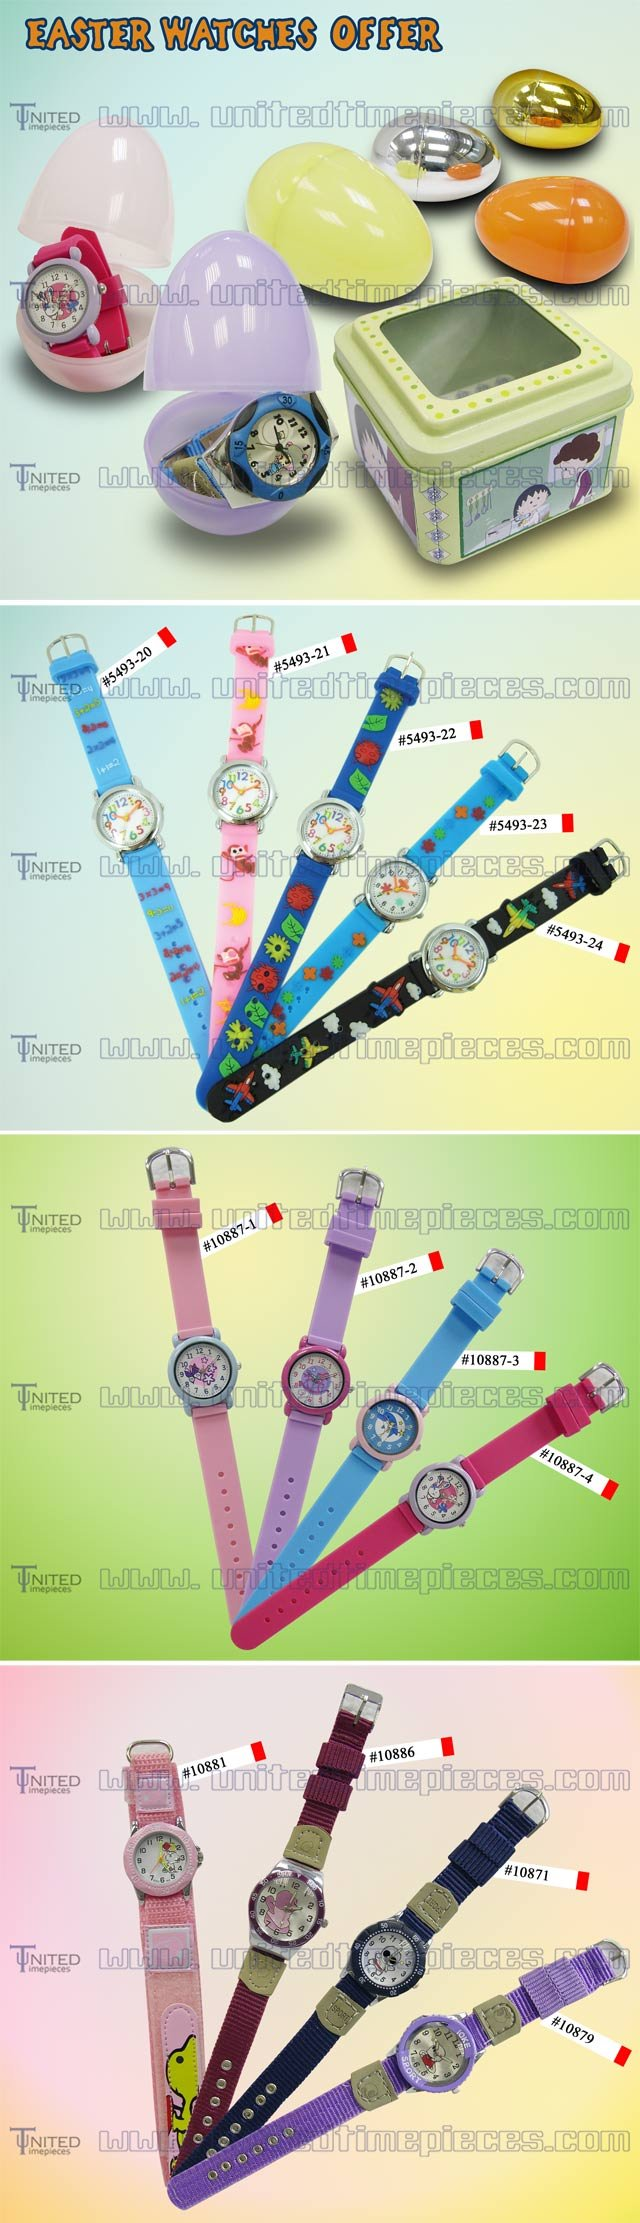 Easter Watches